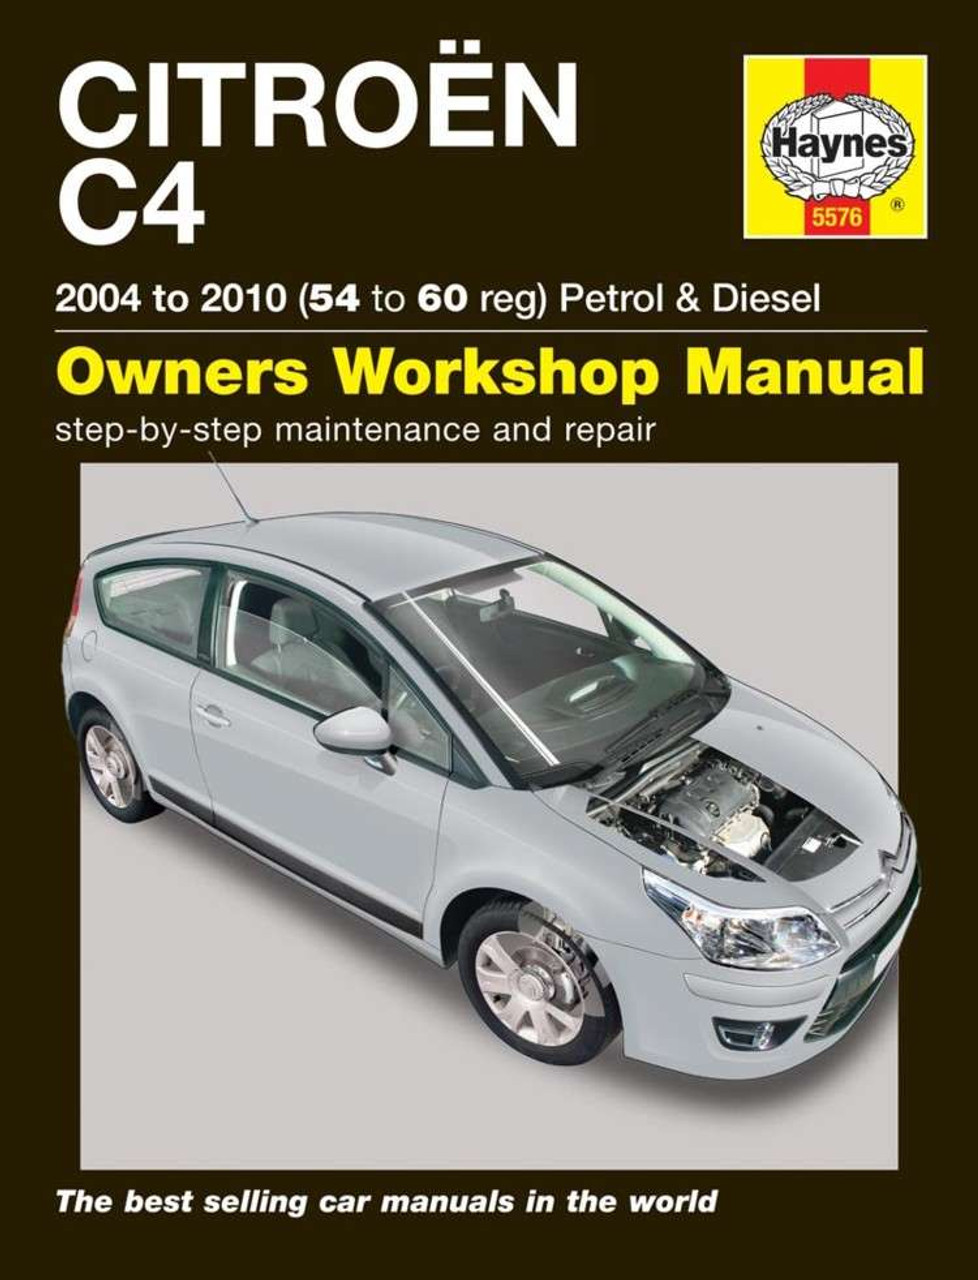 citroen c4 petrol diesel 2004 2010 workshop manual rh automotobookshop com au citroen c4 workshop manual free citroen c4 service manual